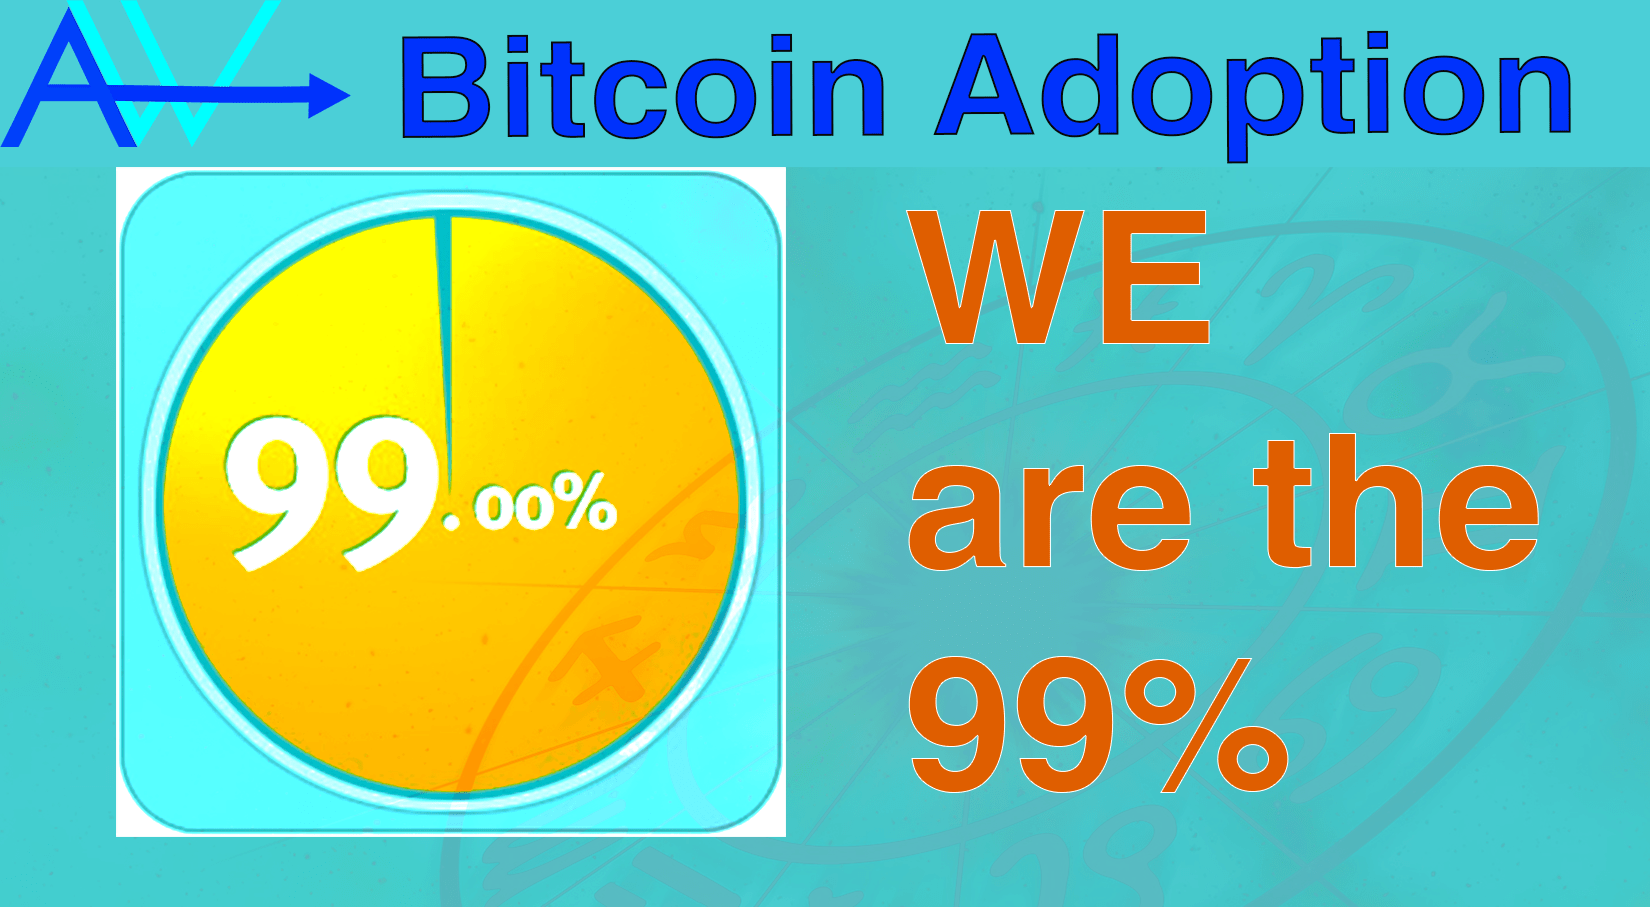 We Are the 99 %!! Bitcoin Adoption!<br><span style='color:#00adee;font-size:.8em'>Bitcoin Adoption </span>